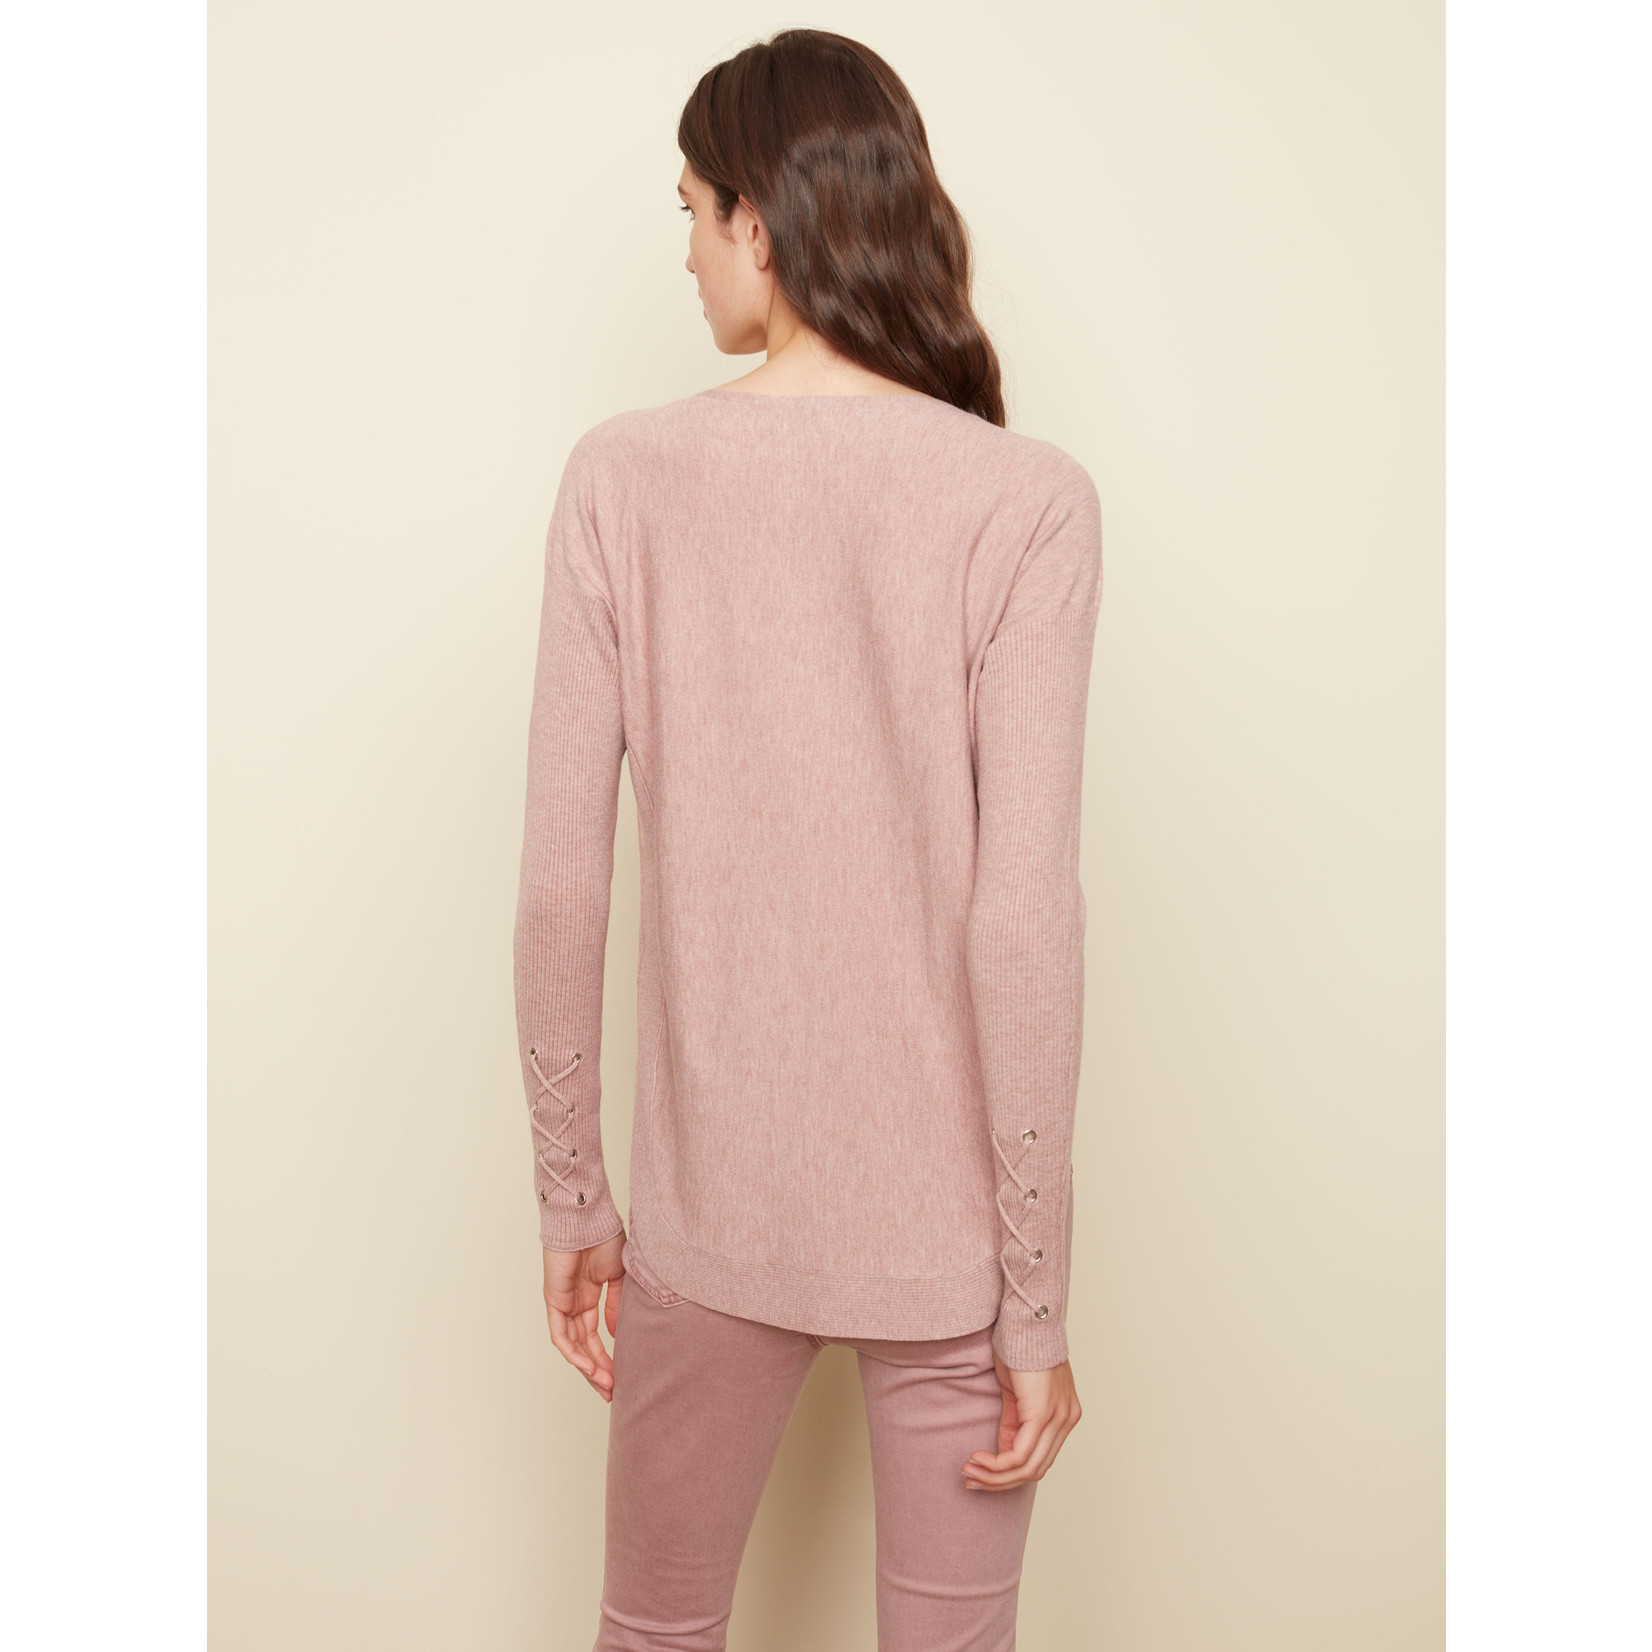 Charlie B Long Sleeve Boat Neck With Pockets